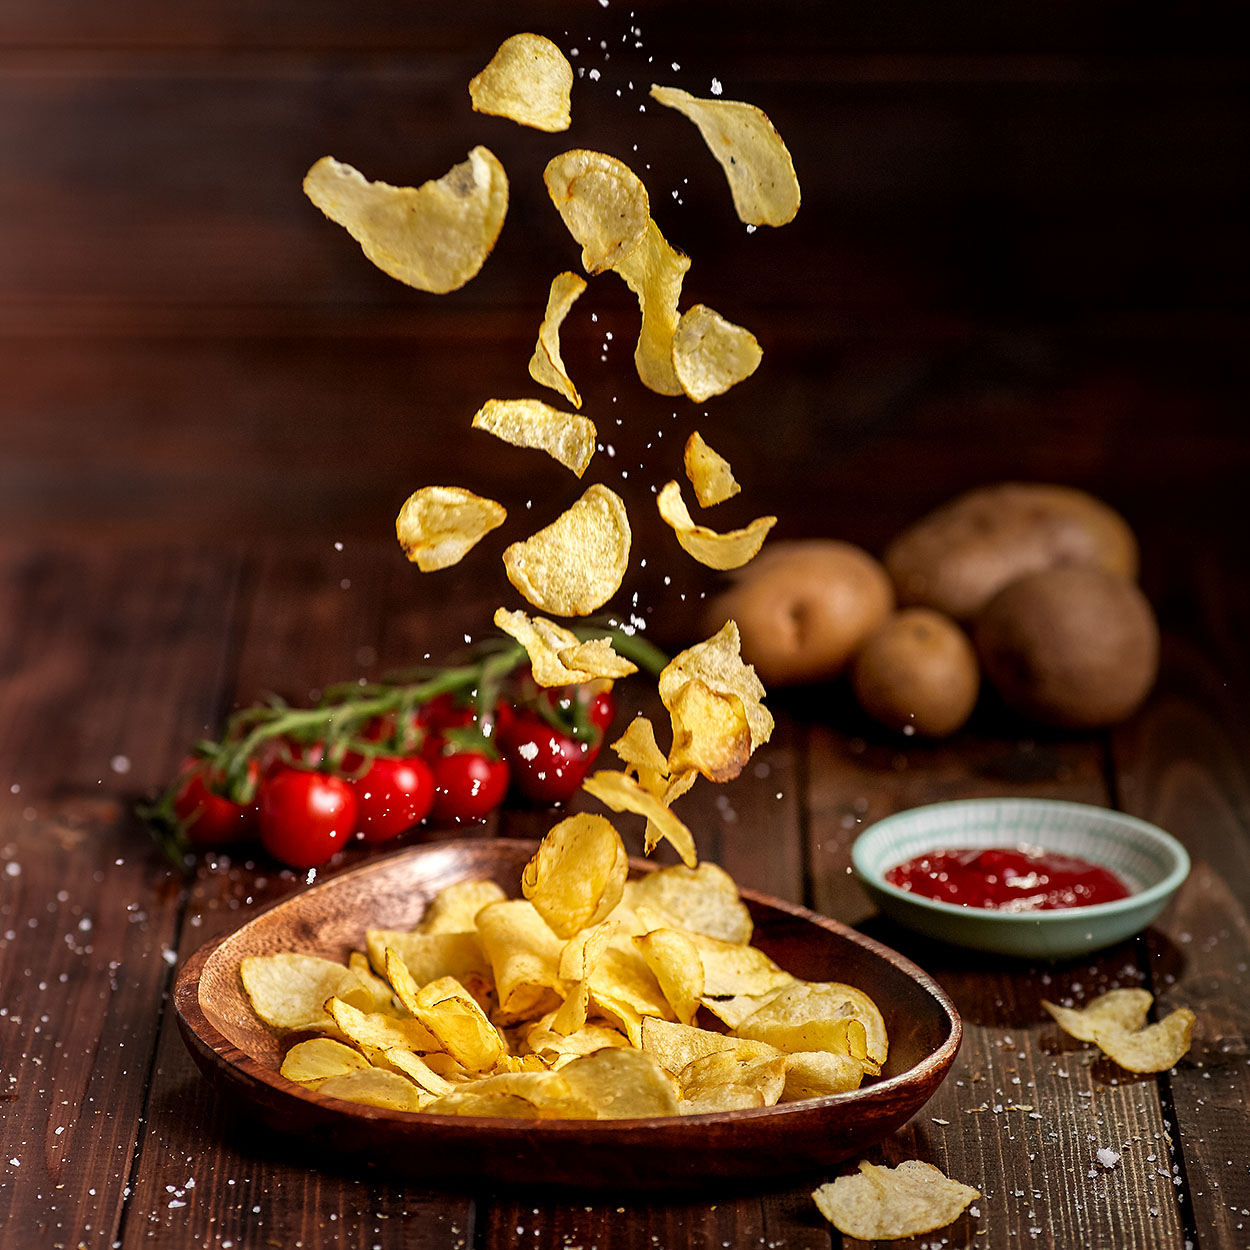 foodfotografie, chips, aktion, kino, tomaten, kartoffel, ketchup, Marchtrenk, Linz, Wels, Oberösterreich